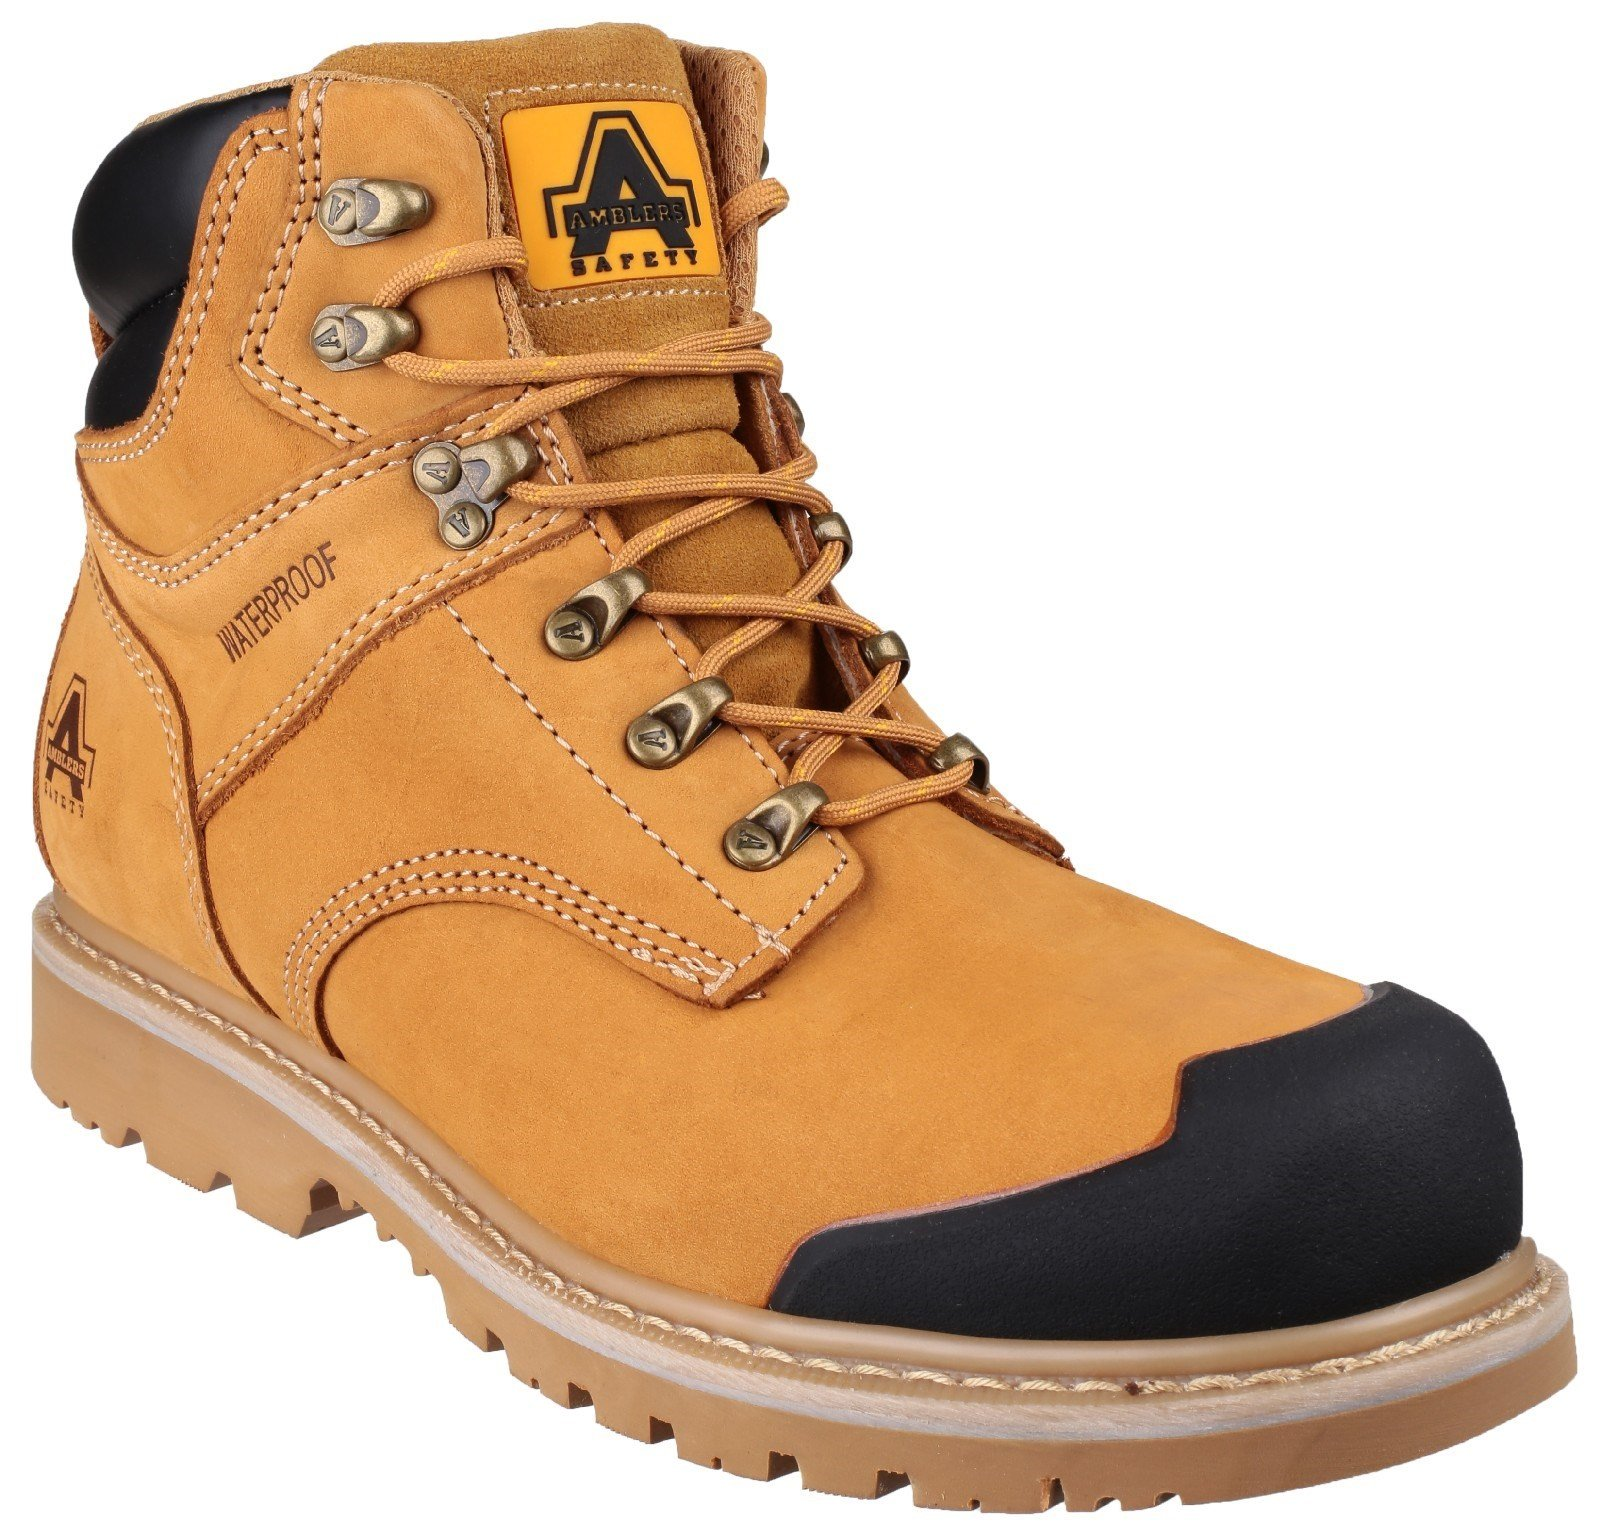 Amblers Unisex Safety Welted Waterproof Lace up Industrial Boot Honey 20434 - Honey 6